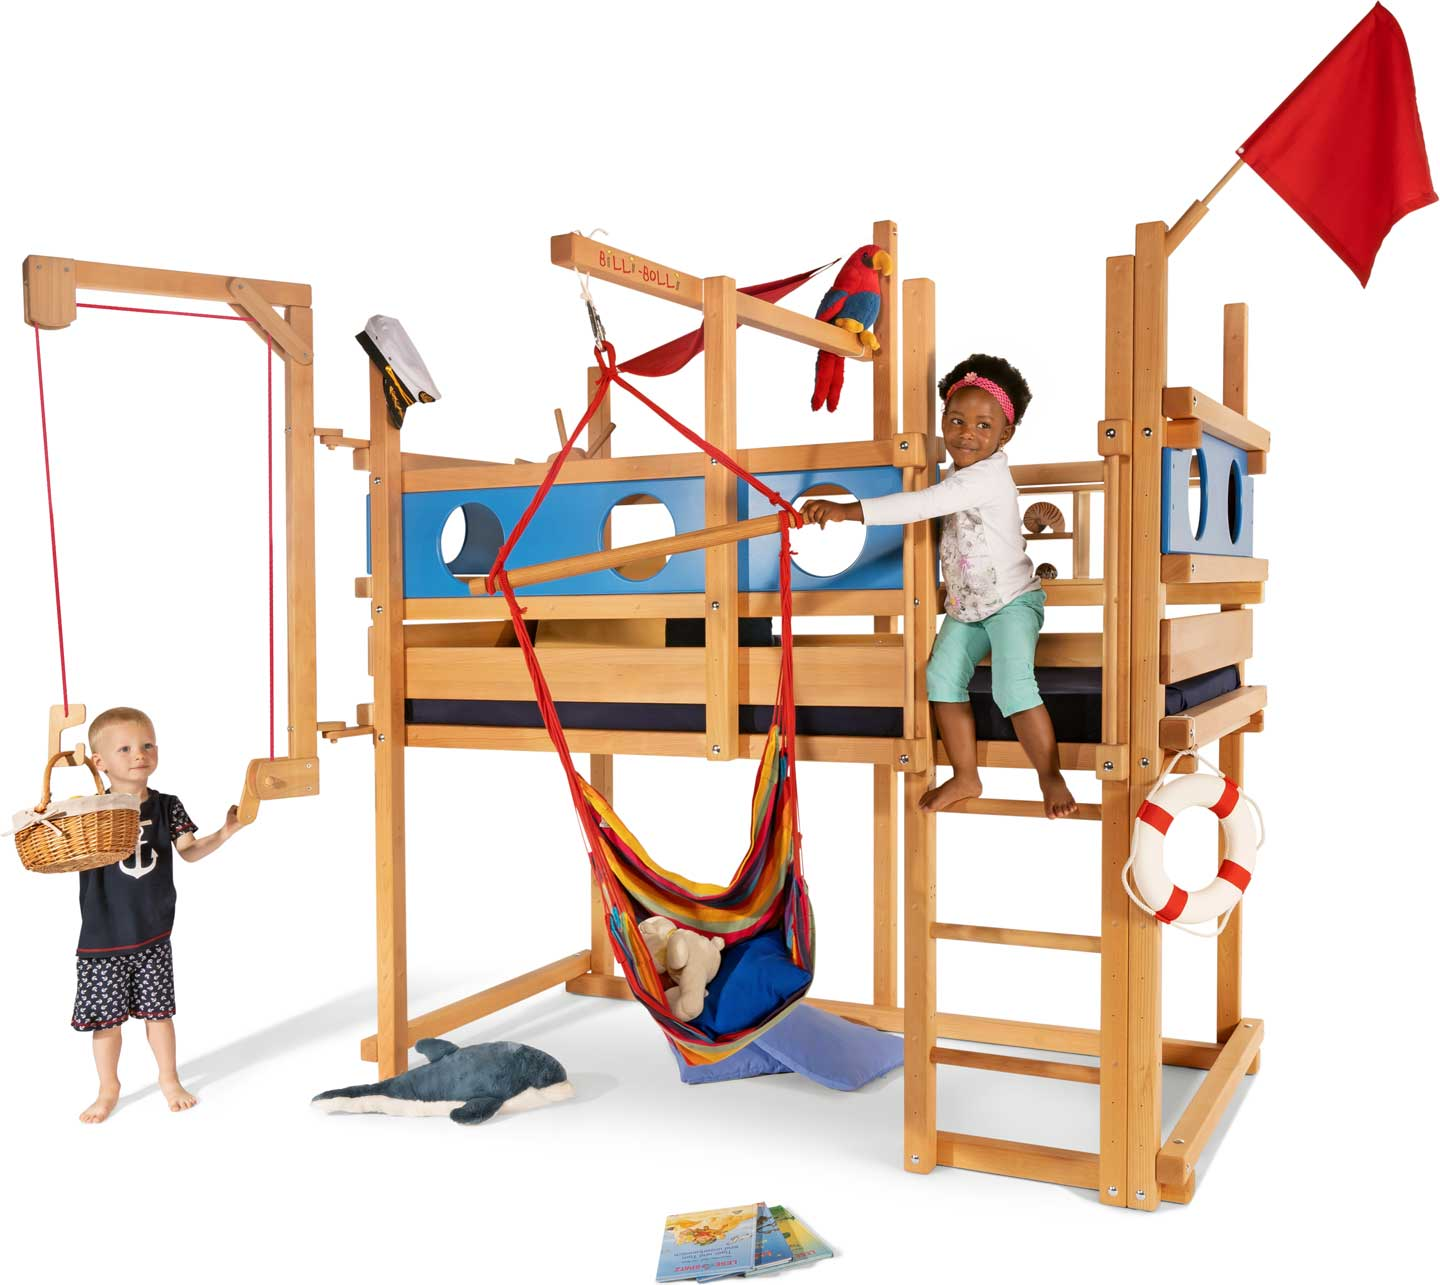 The Loft Bed Adjustable by Age in beech, assembled at height 4. Pictured with Porthole Theme Boards varnished in blue, Play Crane, swing beam, Swing Chair, Helm, Small Bed Shelf, Flag and mattress Nele Plus.